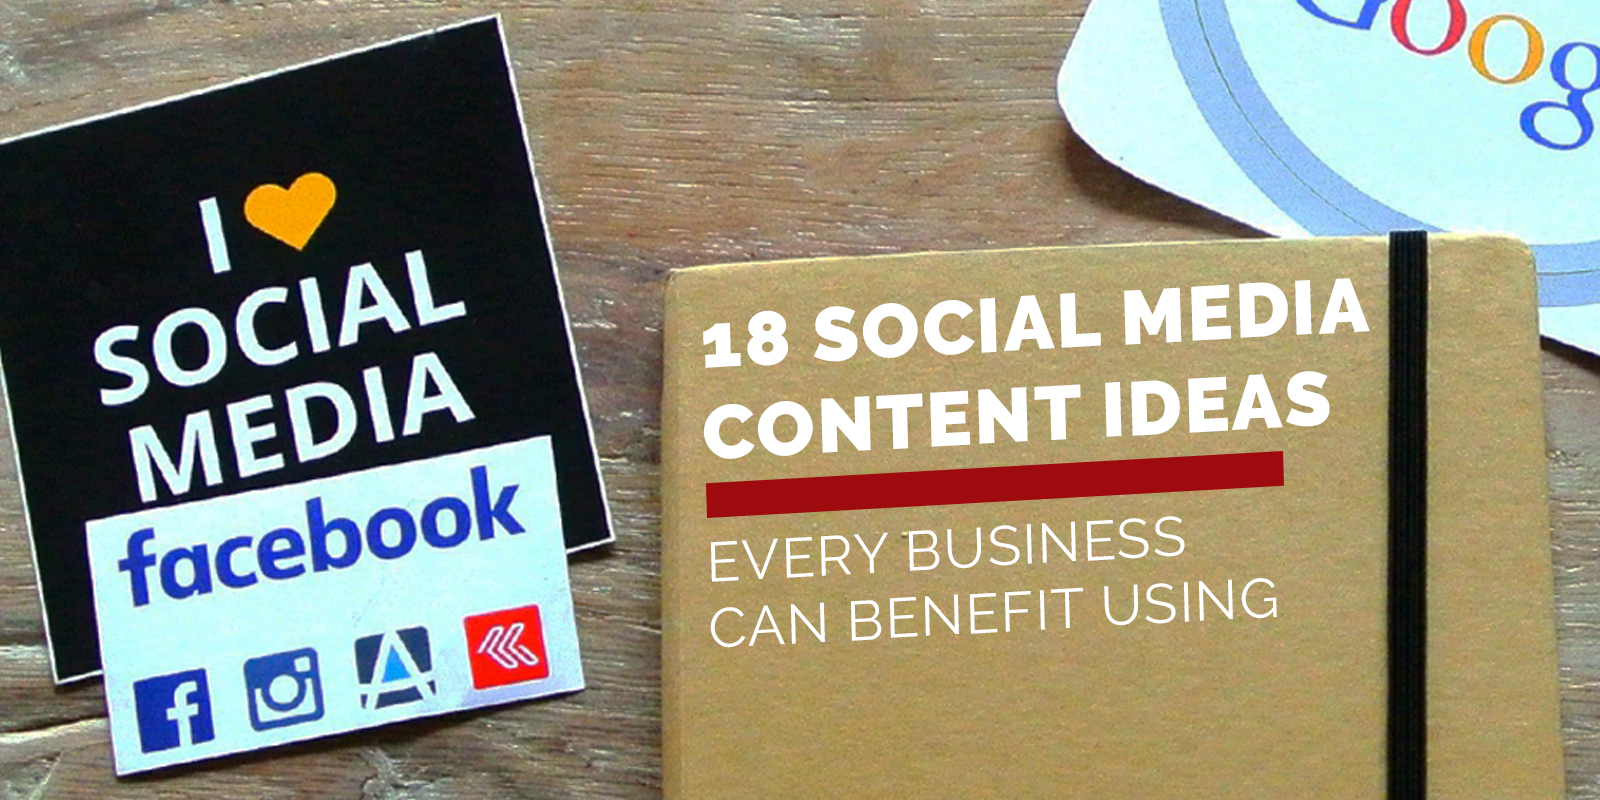 18 Social Media Content Ideas Every Business Can Benefit Using